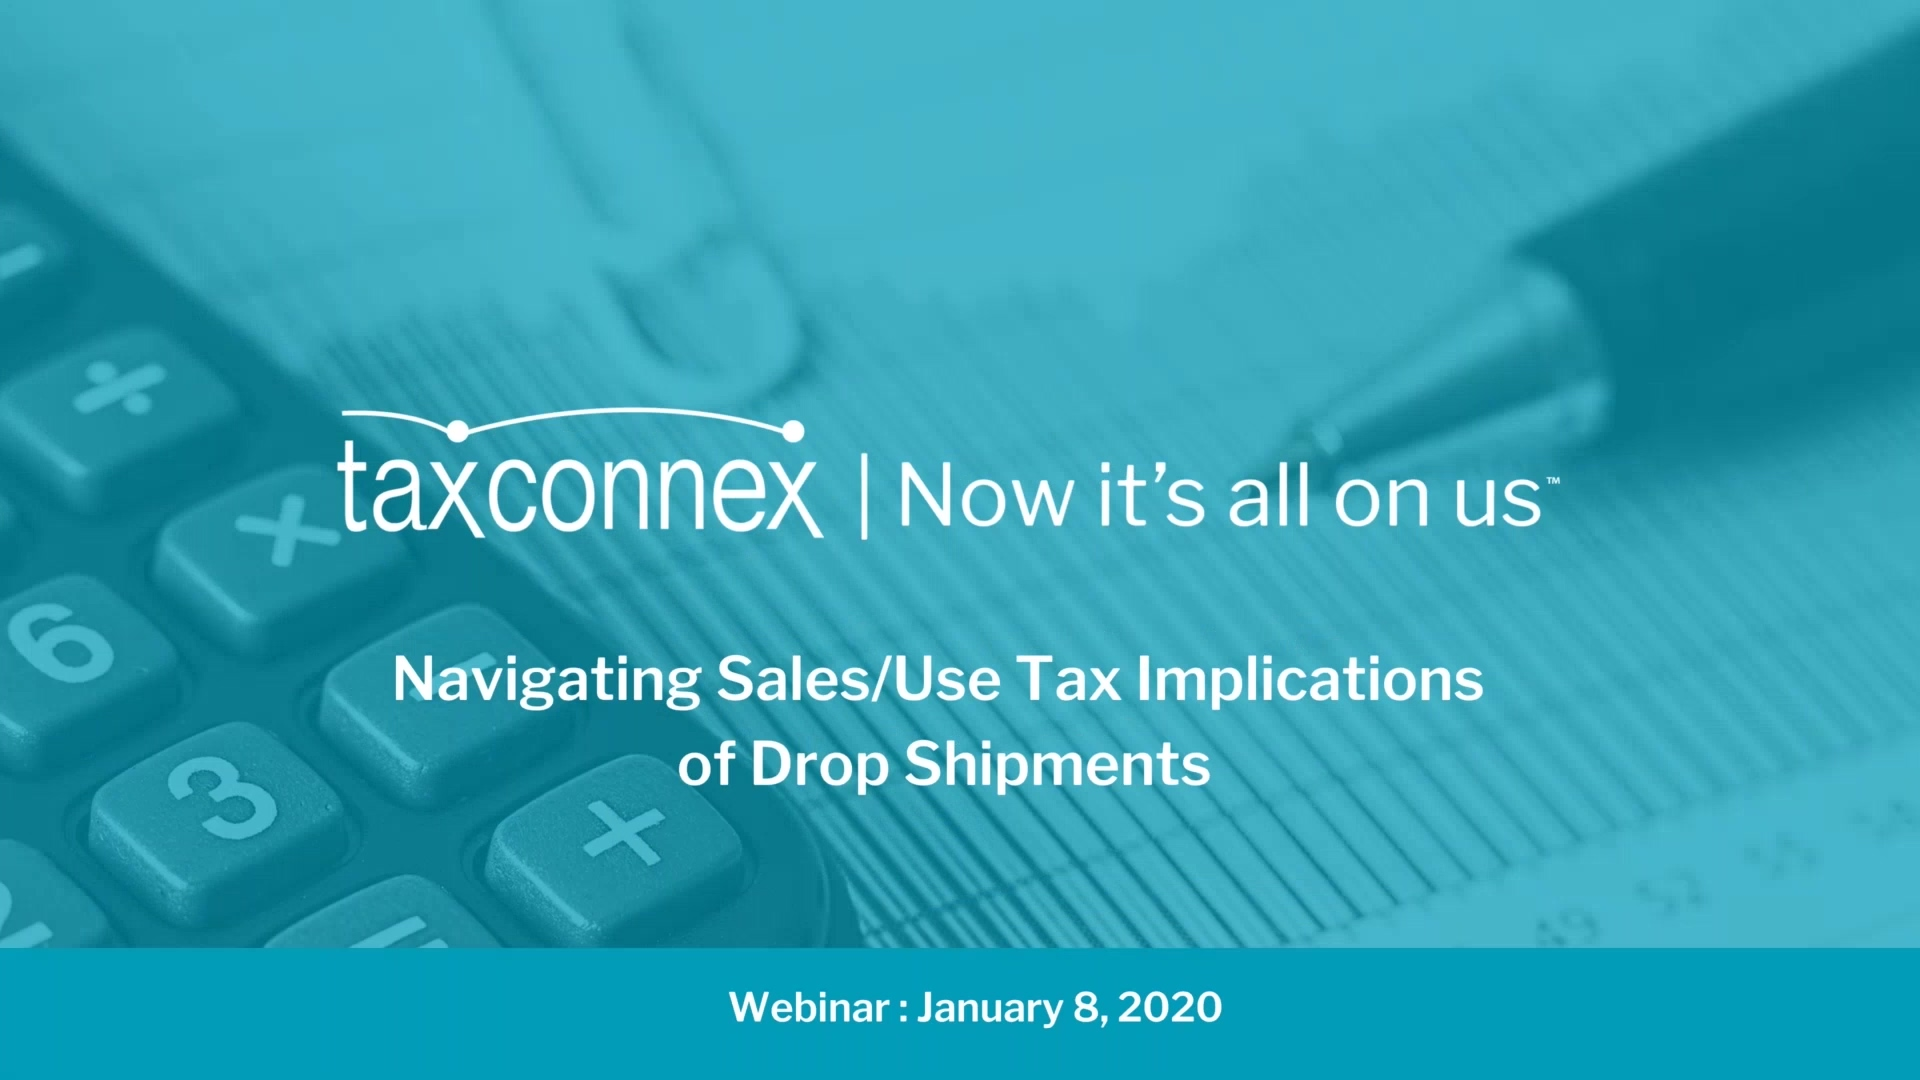 Re-Record - Navigation Sales-Use Tax Implications of Drop Shipments